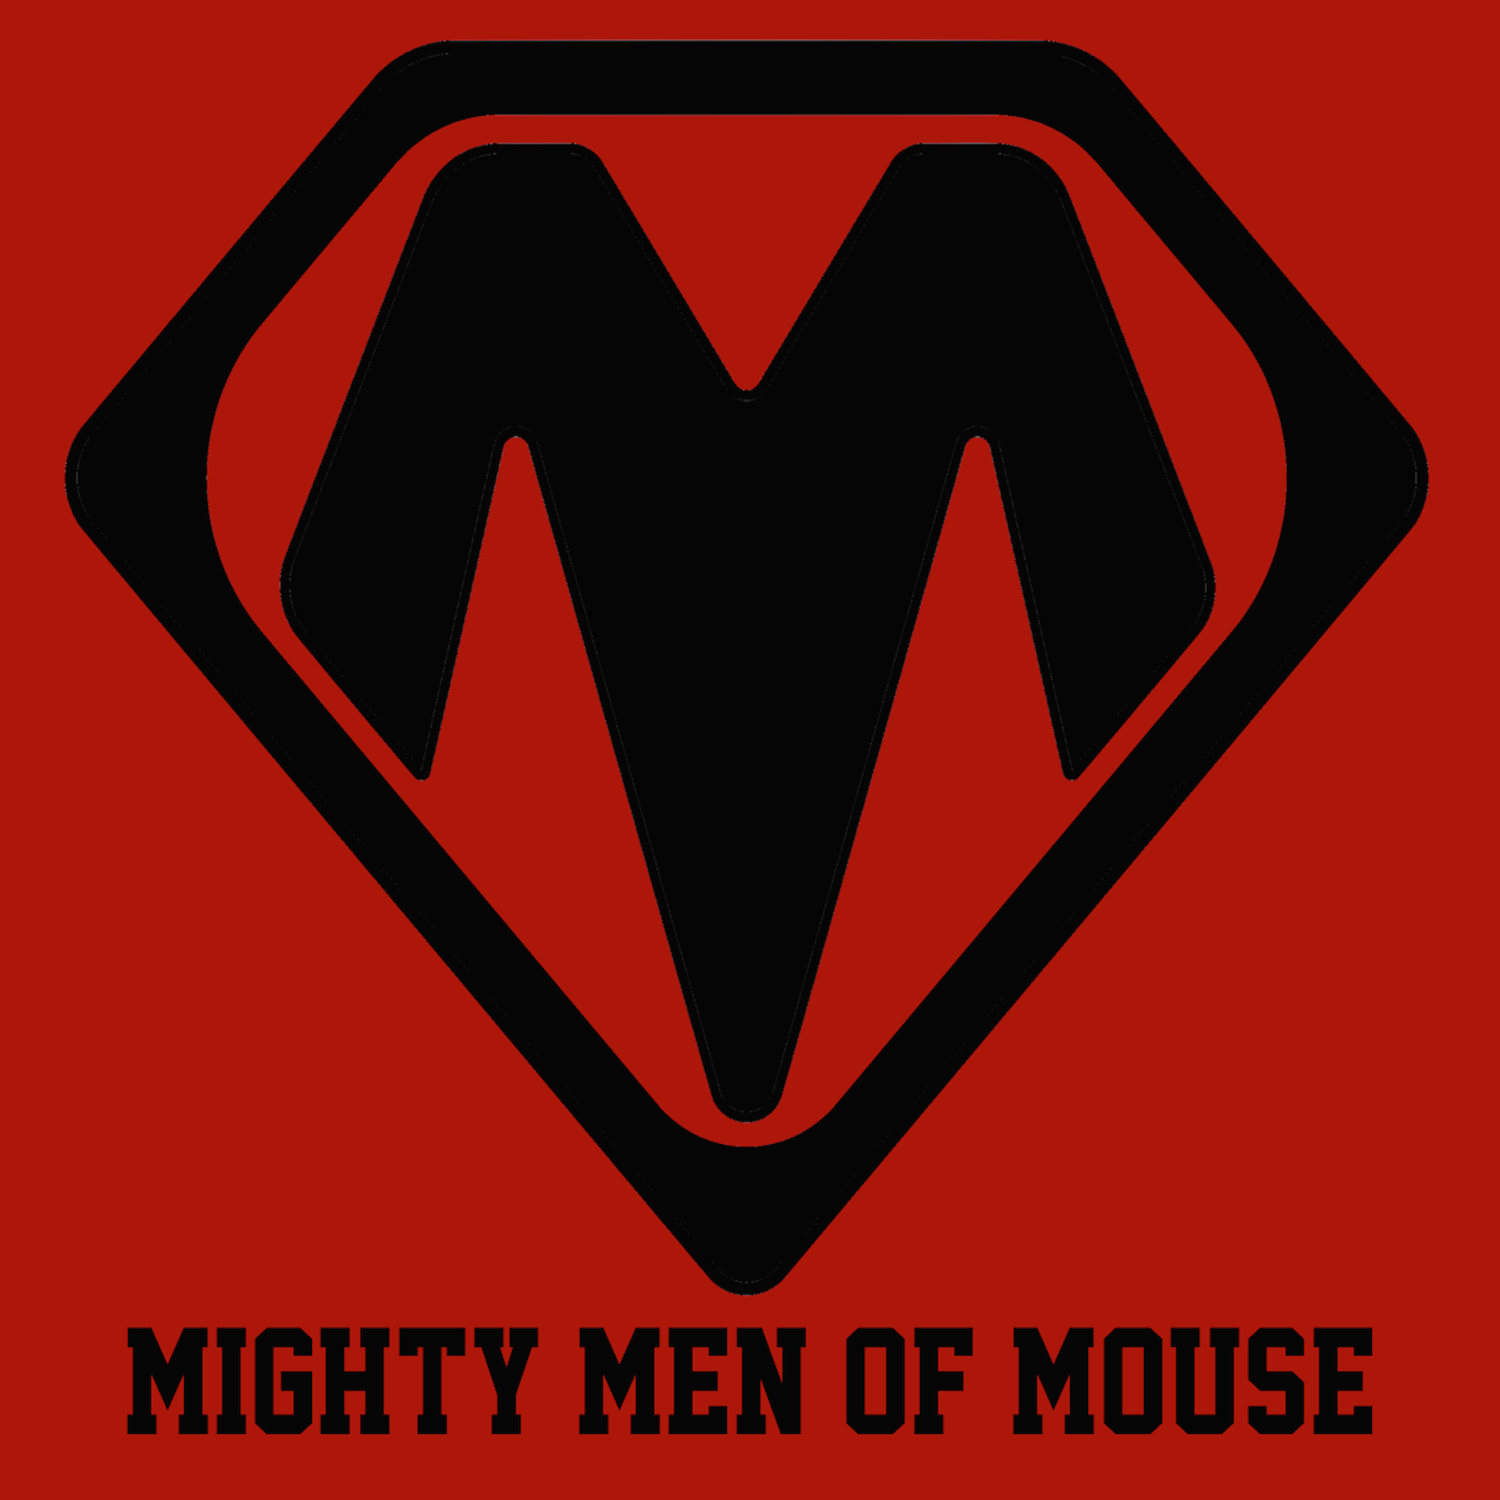 Mighty Men of Mouse: Episode 0400 show art